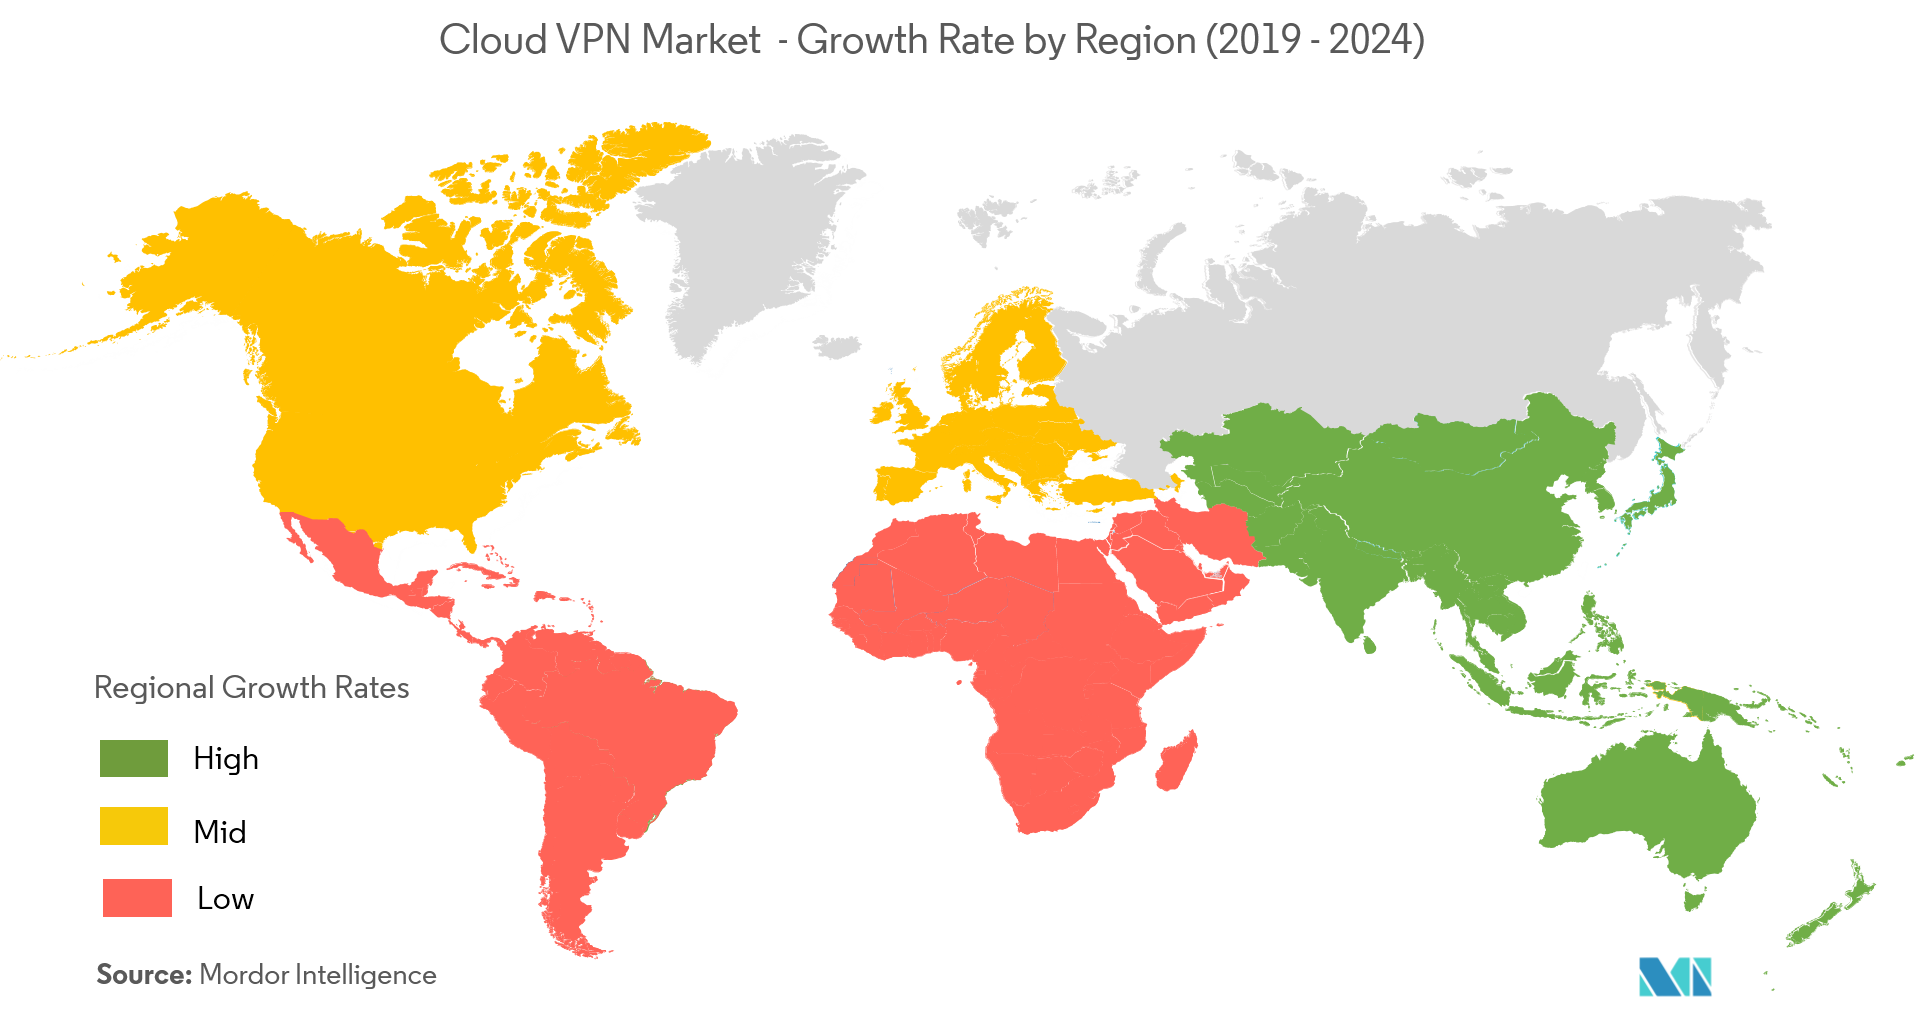 cloud vpn services market